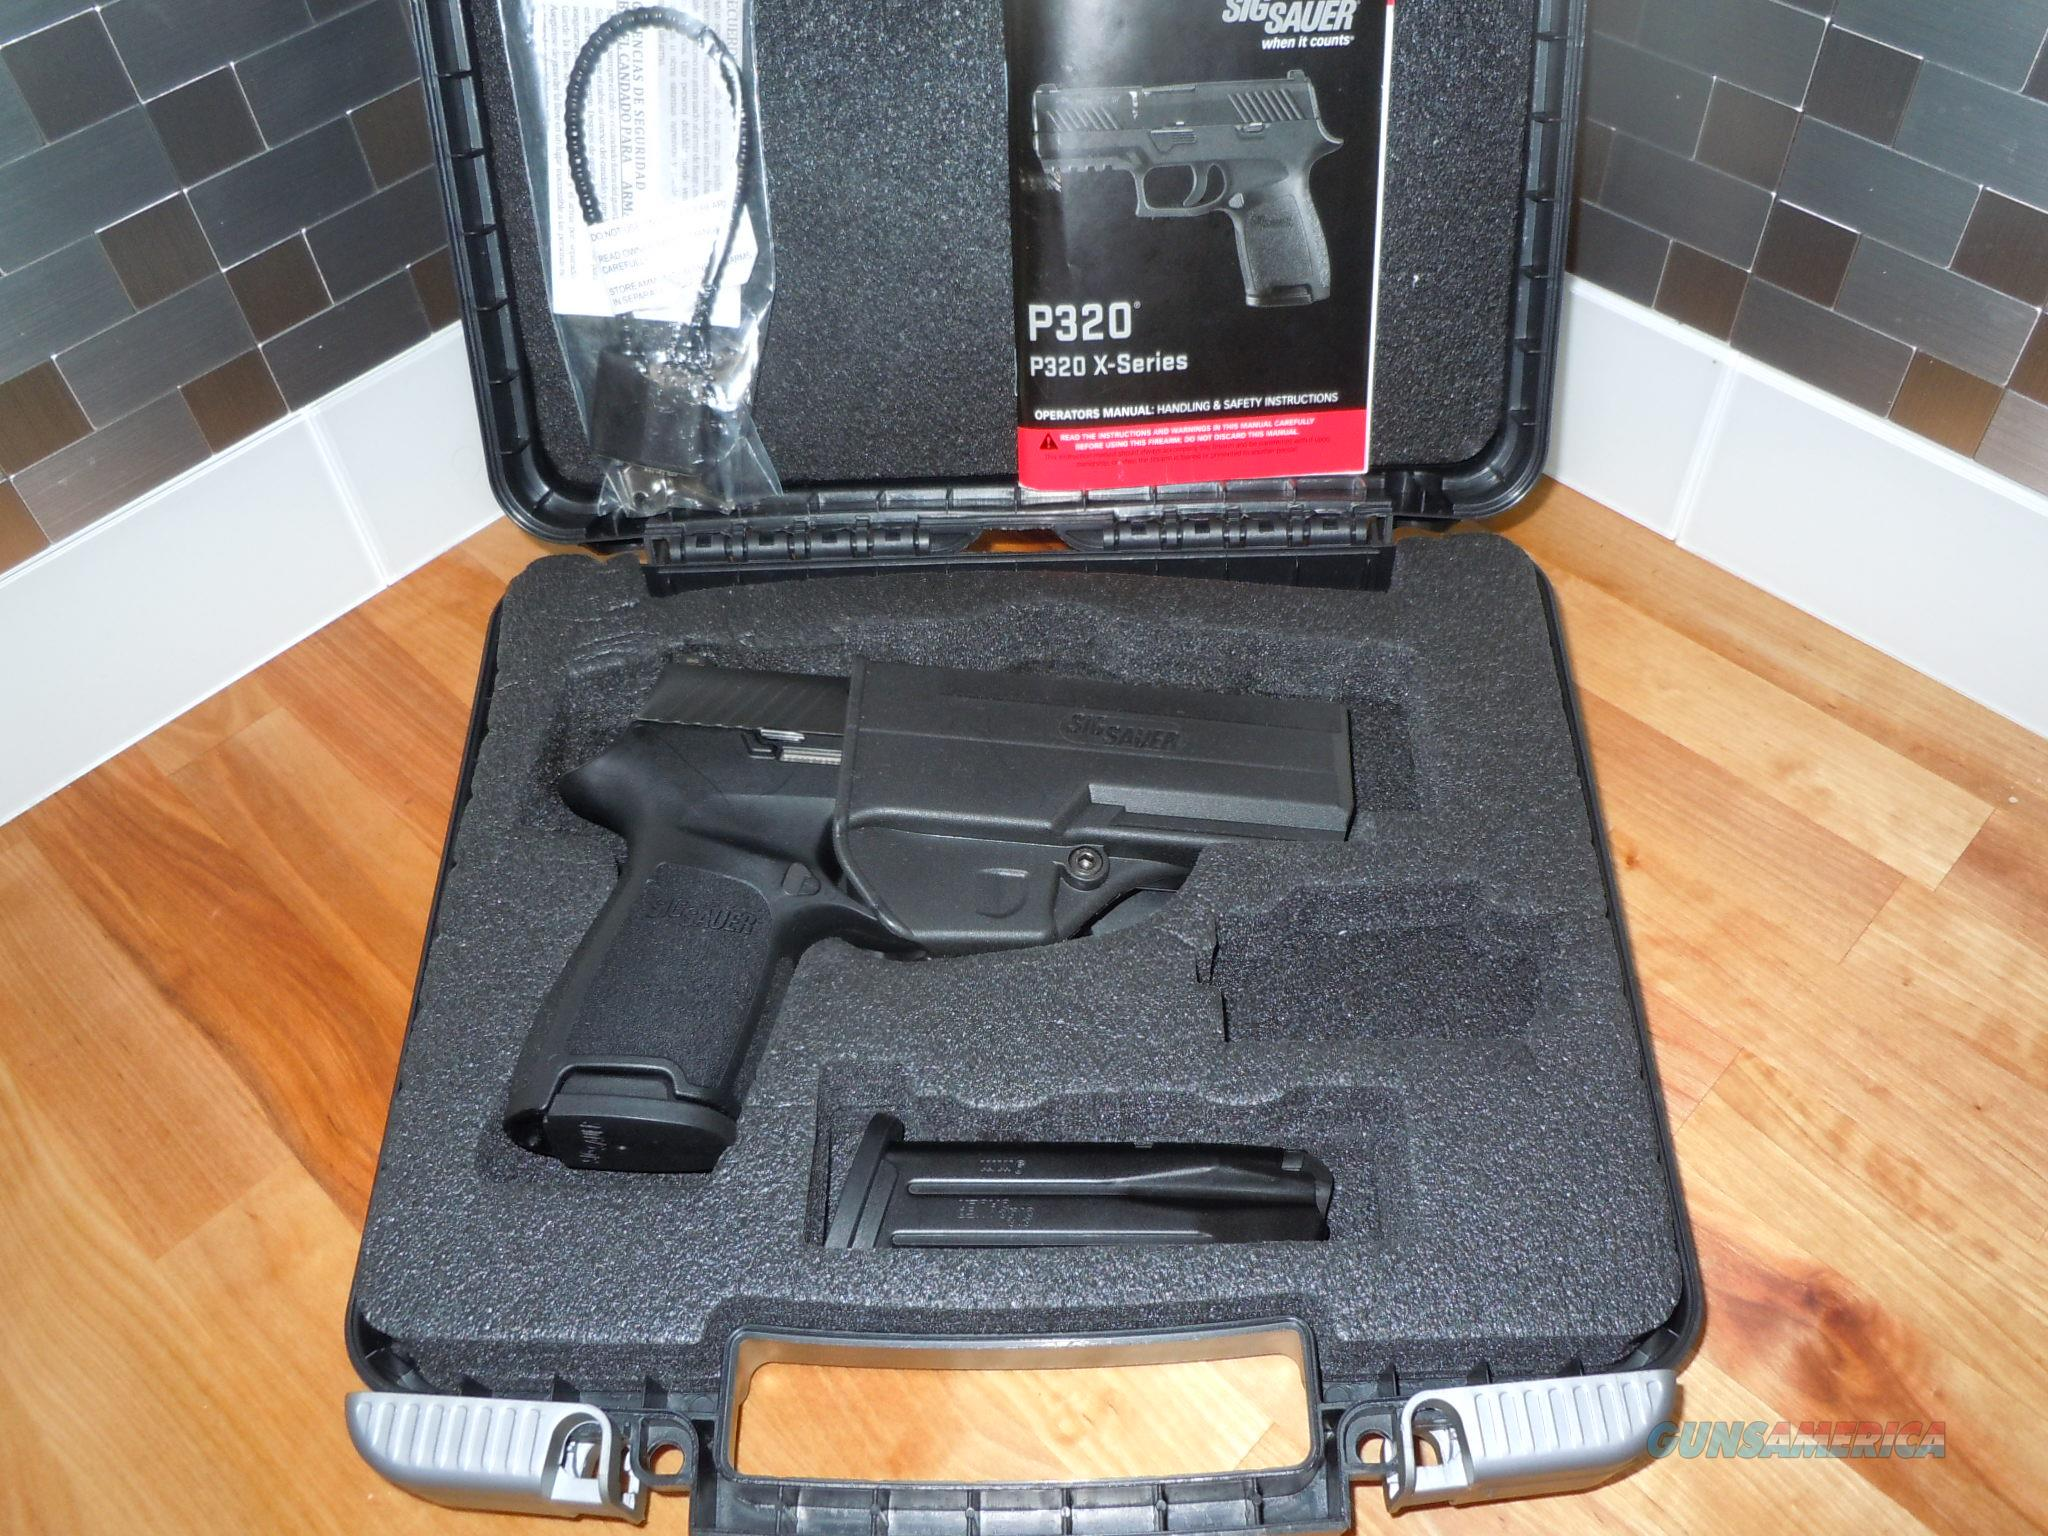 Sig Sauer P320c X-series 9mm Nitron 2-15rnd Mags Fired once by me.   Guns > Pistols > Sig - Sauer/Sigarms Pistols > P230